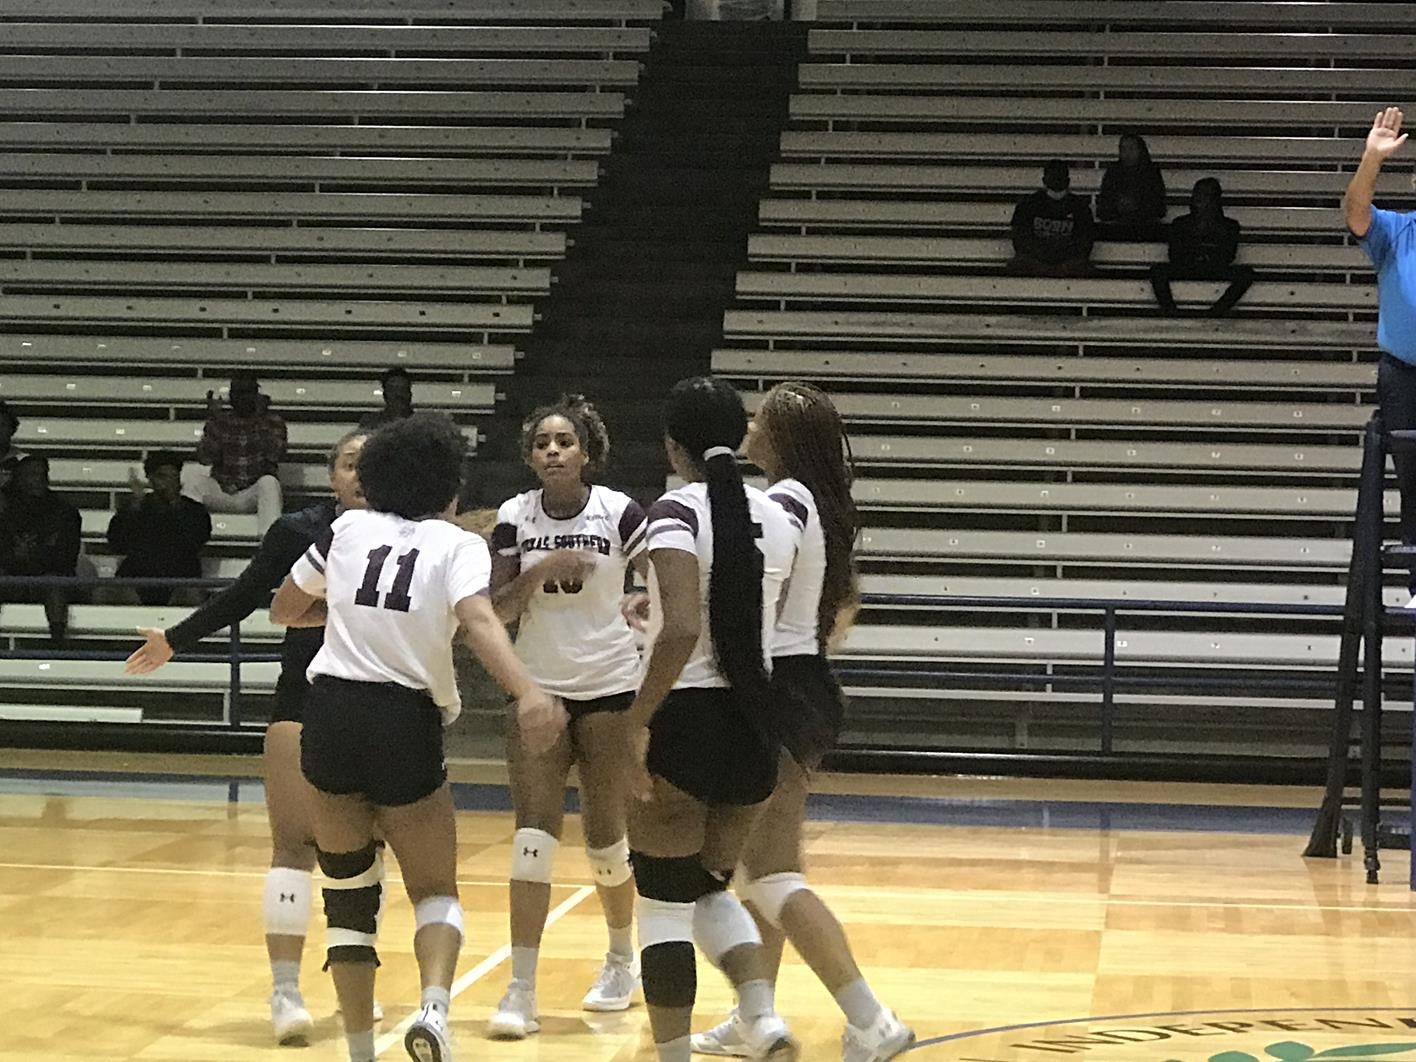 <div>Volleyball Prepares For SWAC Showdown Against Prairie View A&M Wednesday Night</div>